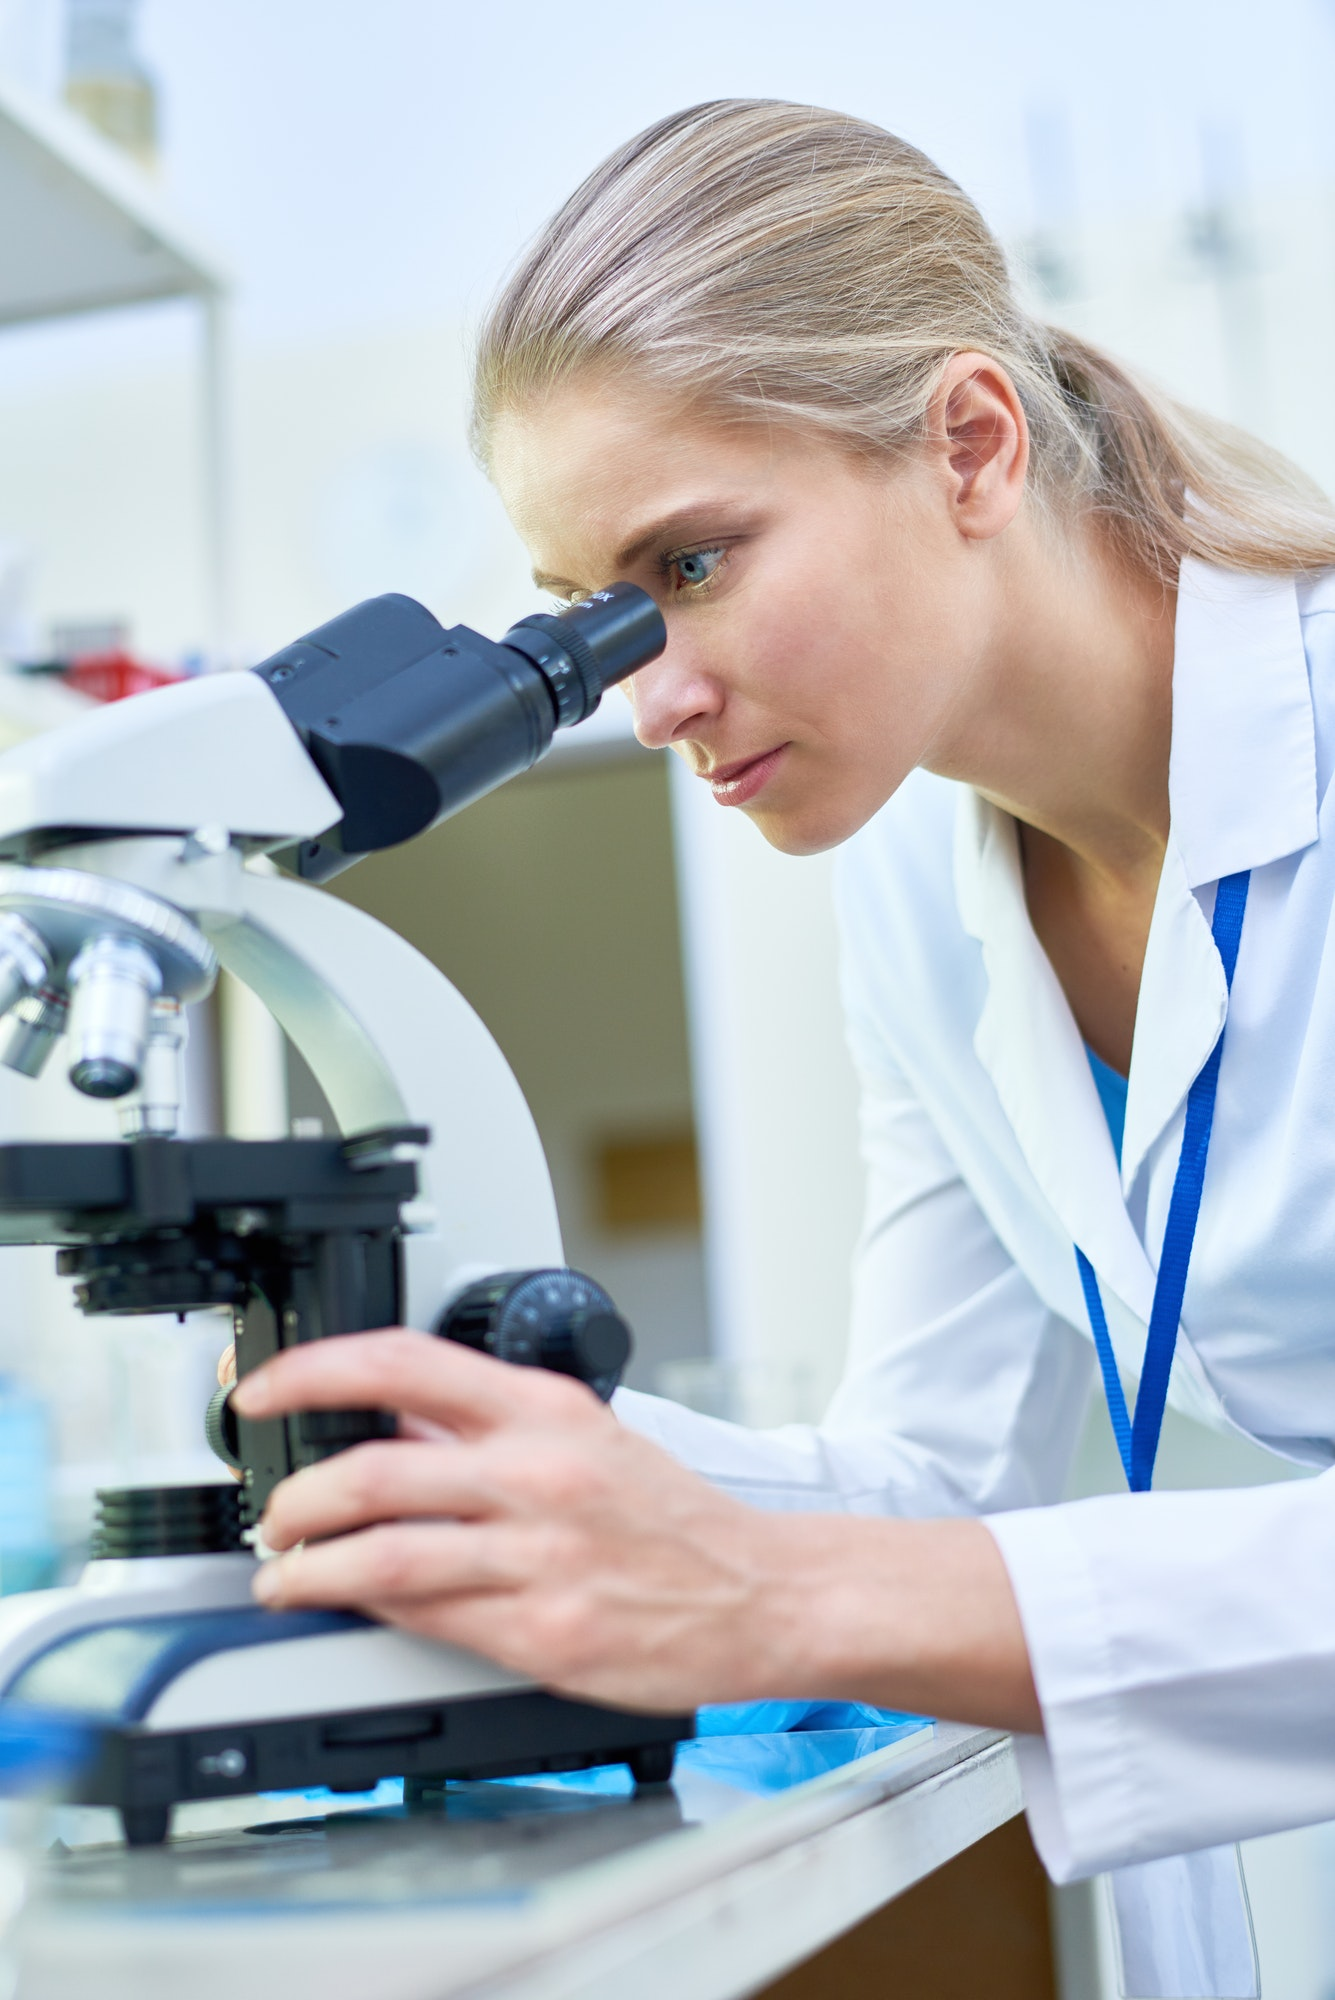 Female Scientist Using Microscope